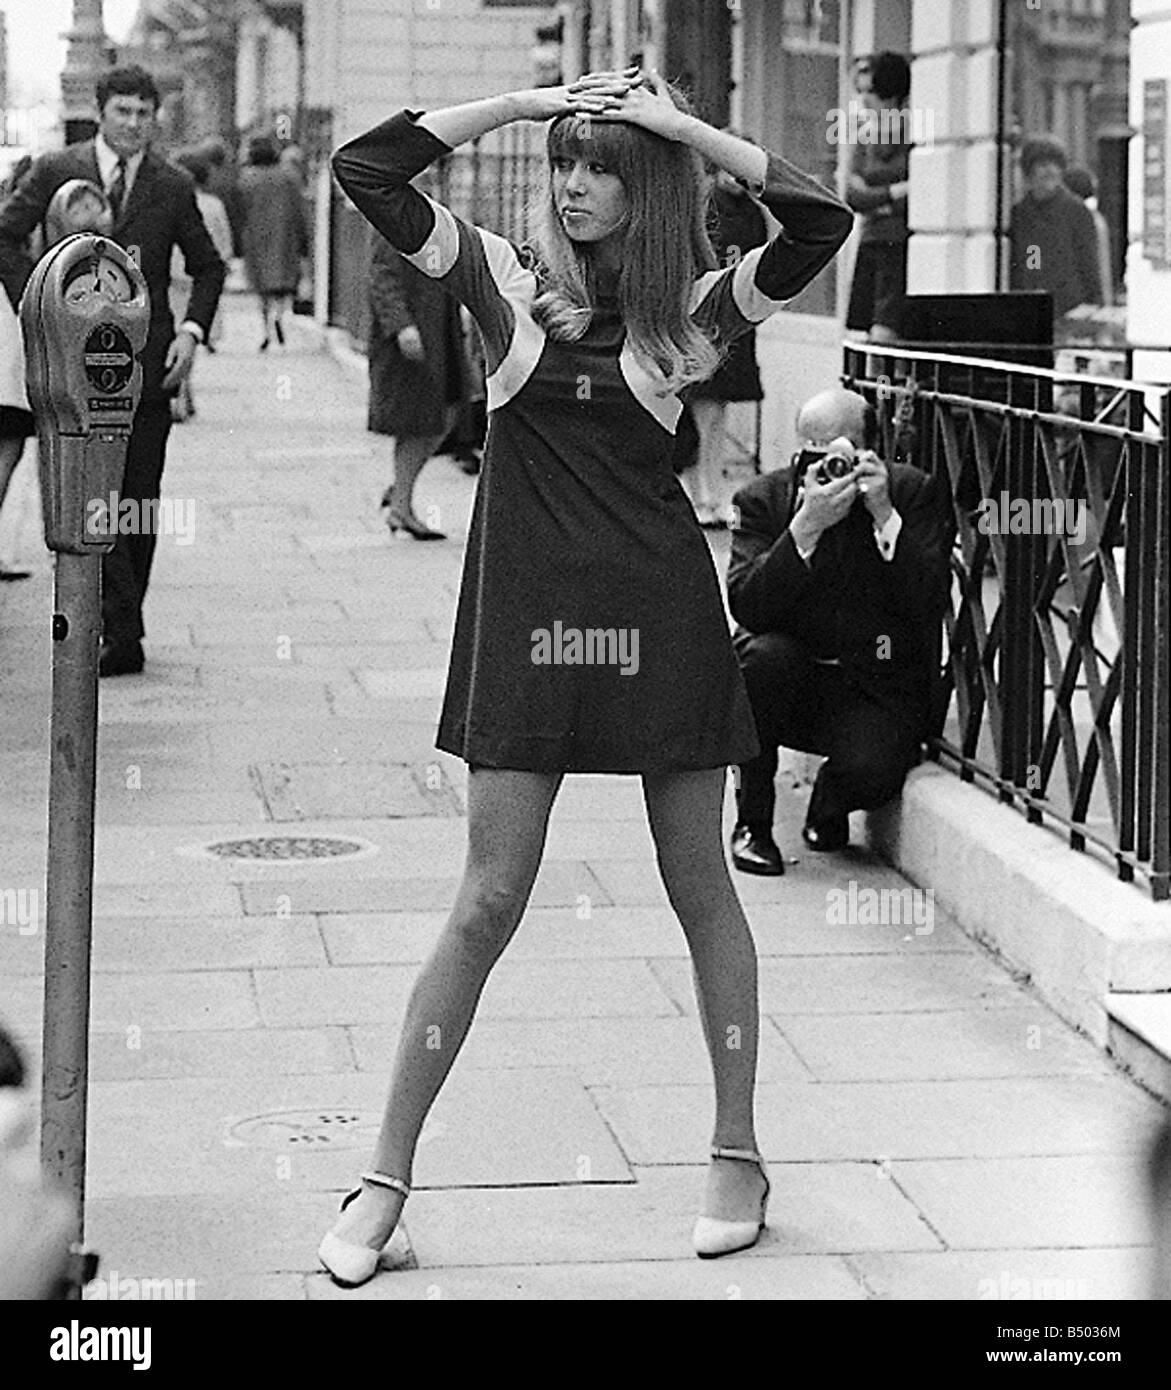 Beatles Files 1966 Model Patti Boyd Girlfriend Of George Harrison Being Photographed In The Street